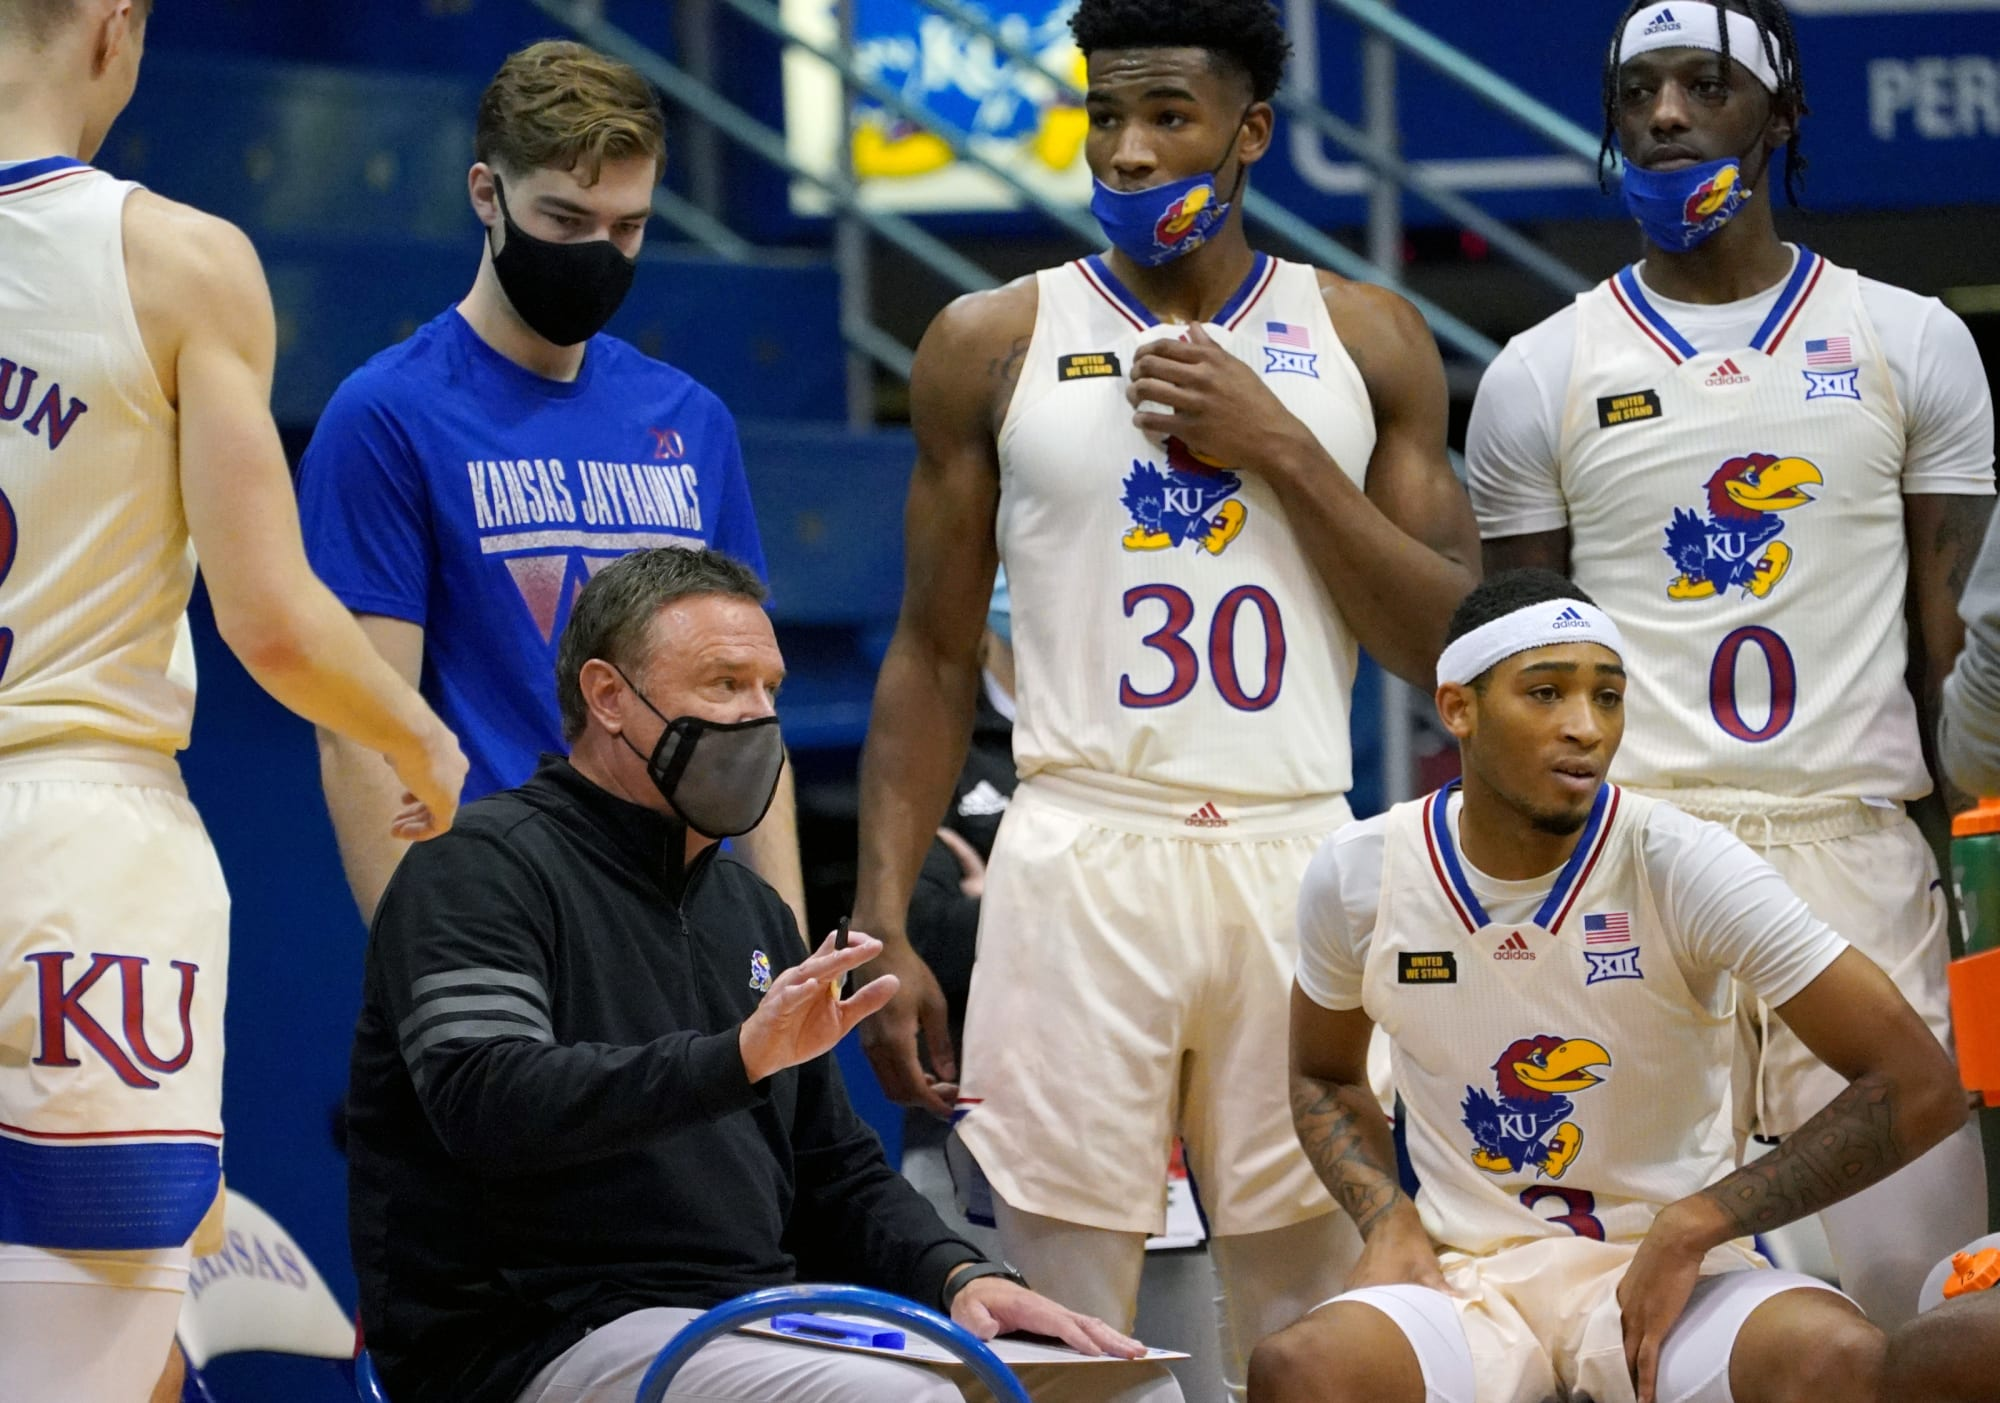 Kansas basketball: Following postponement against Iowa State, the Jayhawks should set their concerns to Baylor on Monday